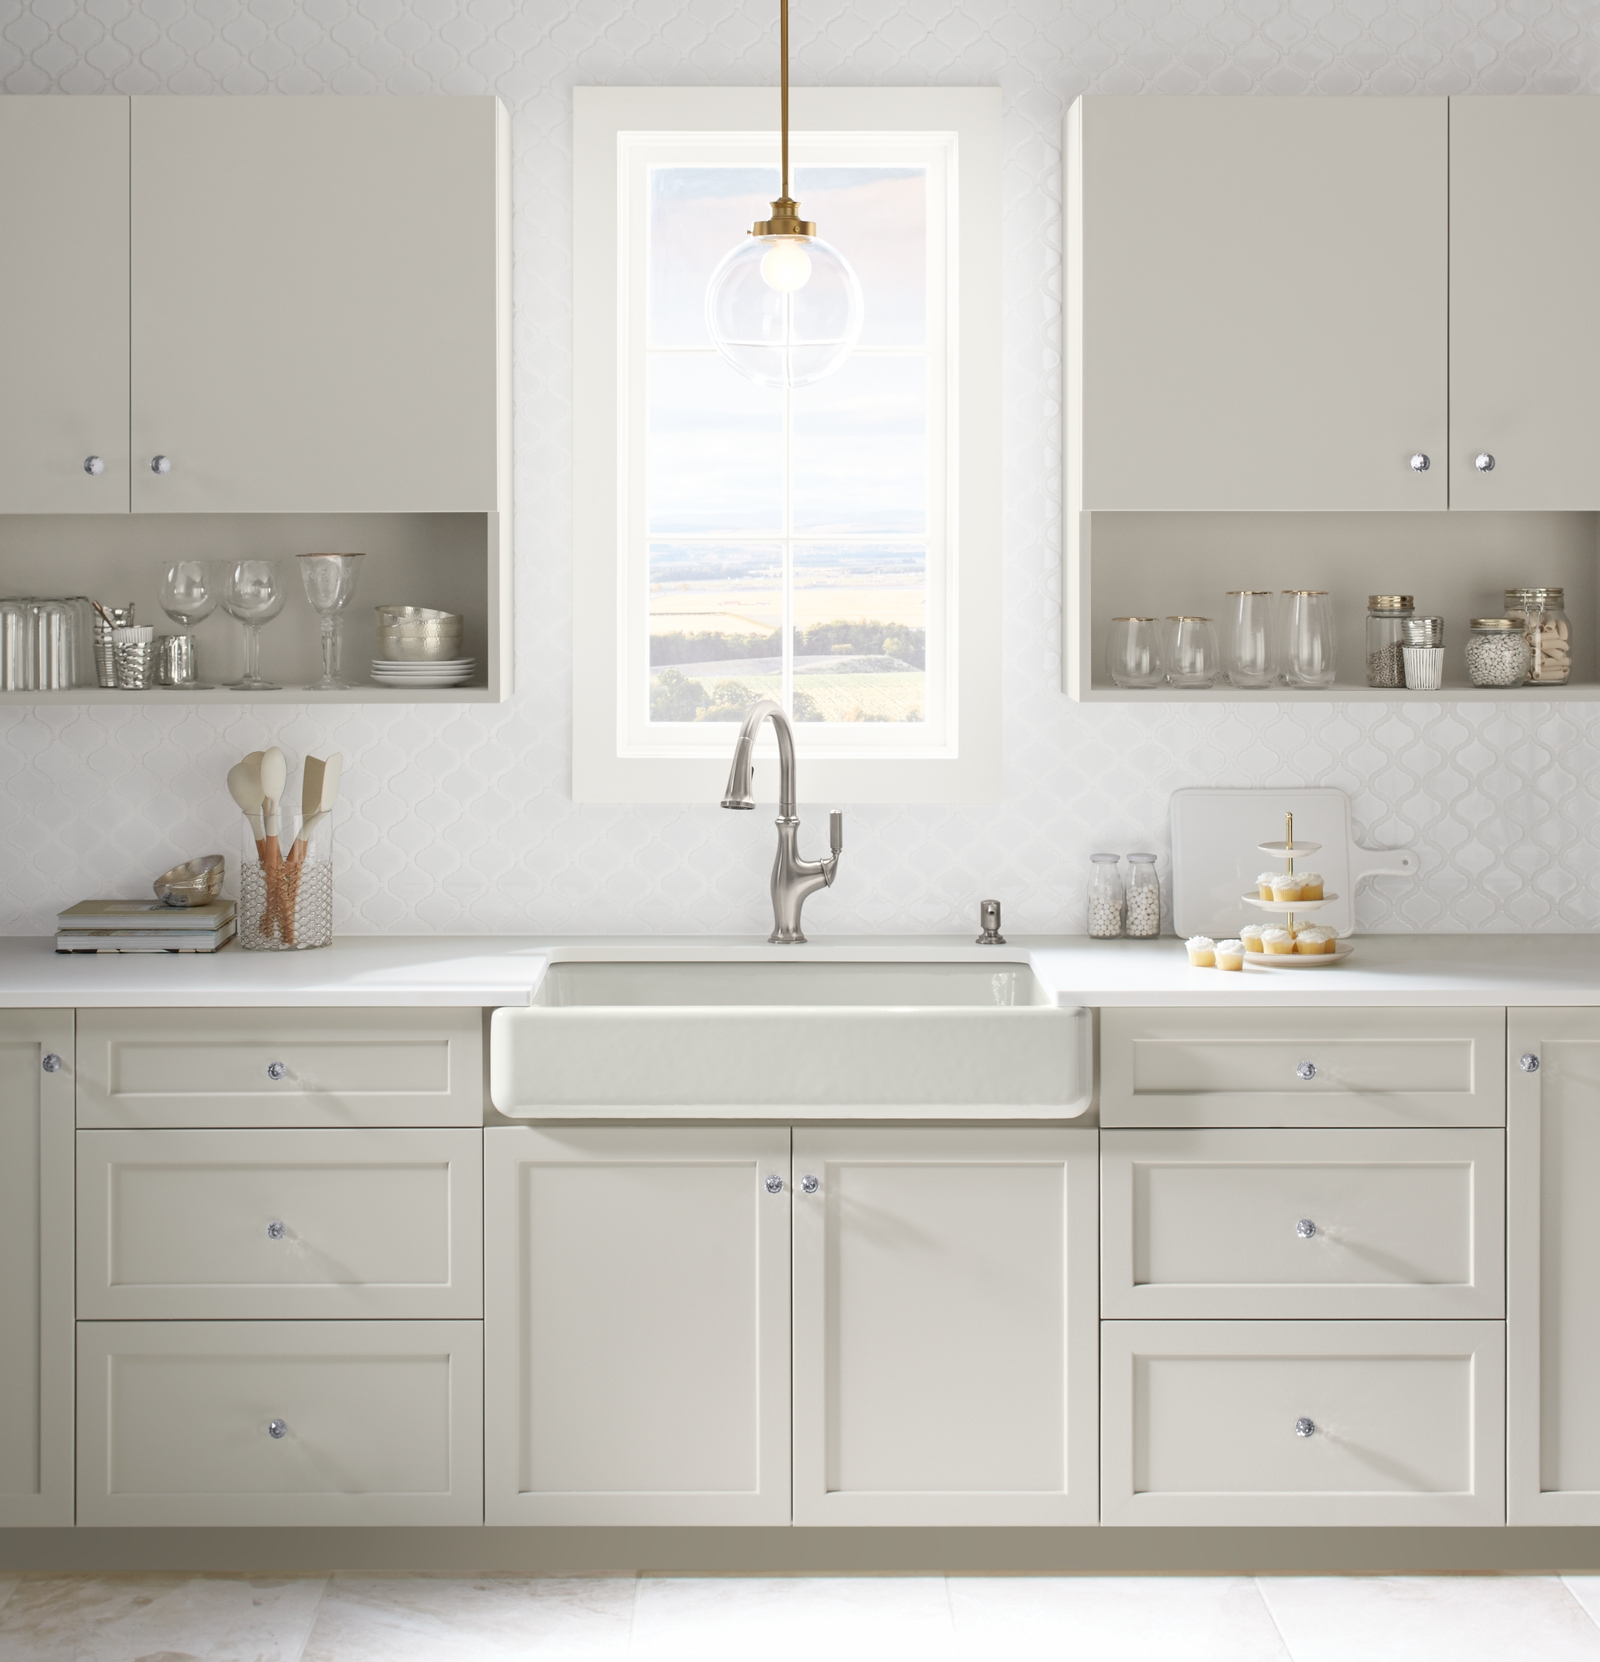 good Farmhouse Kitchen Faucet #5: I cannot choose which faucet is going to look the best in my farmhouse  kitchen!